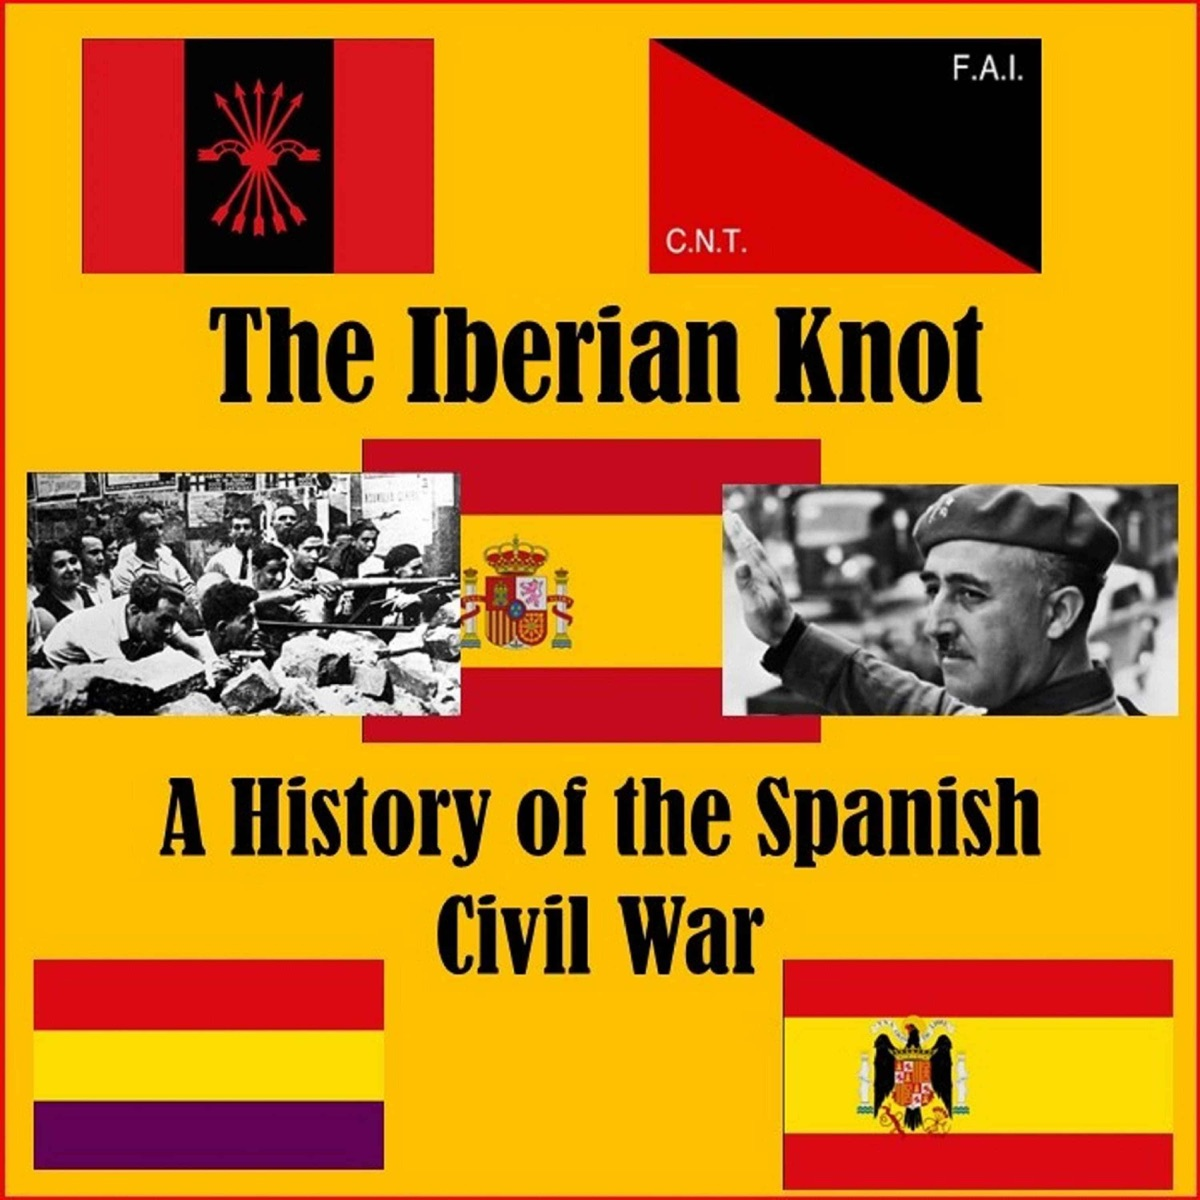 The Iberian Knot - A History of the Spanish Civil War